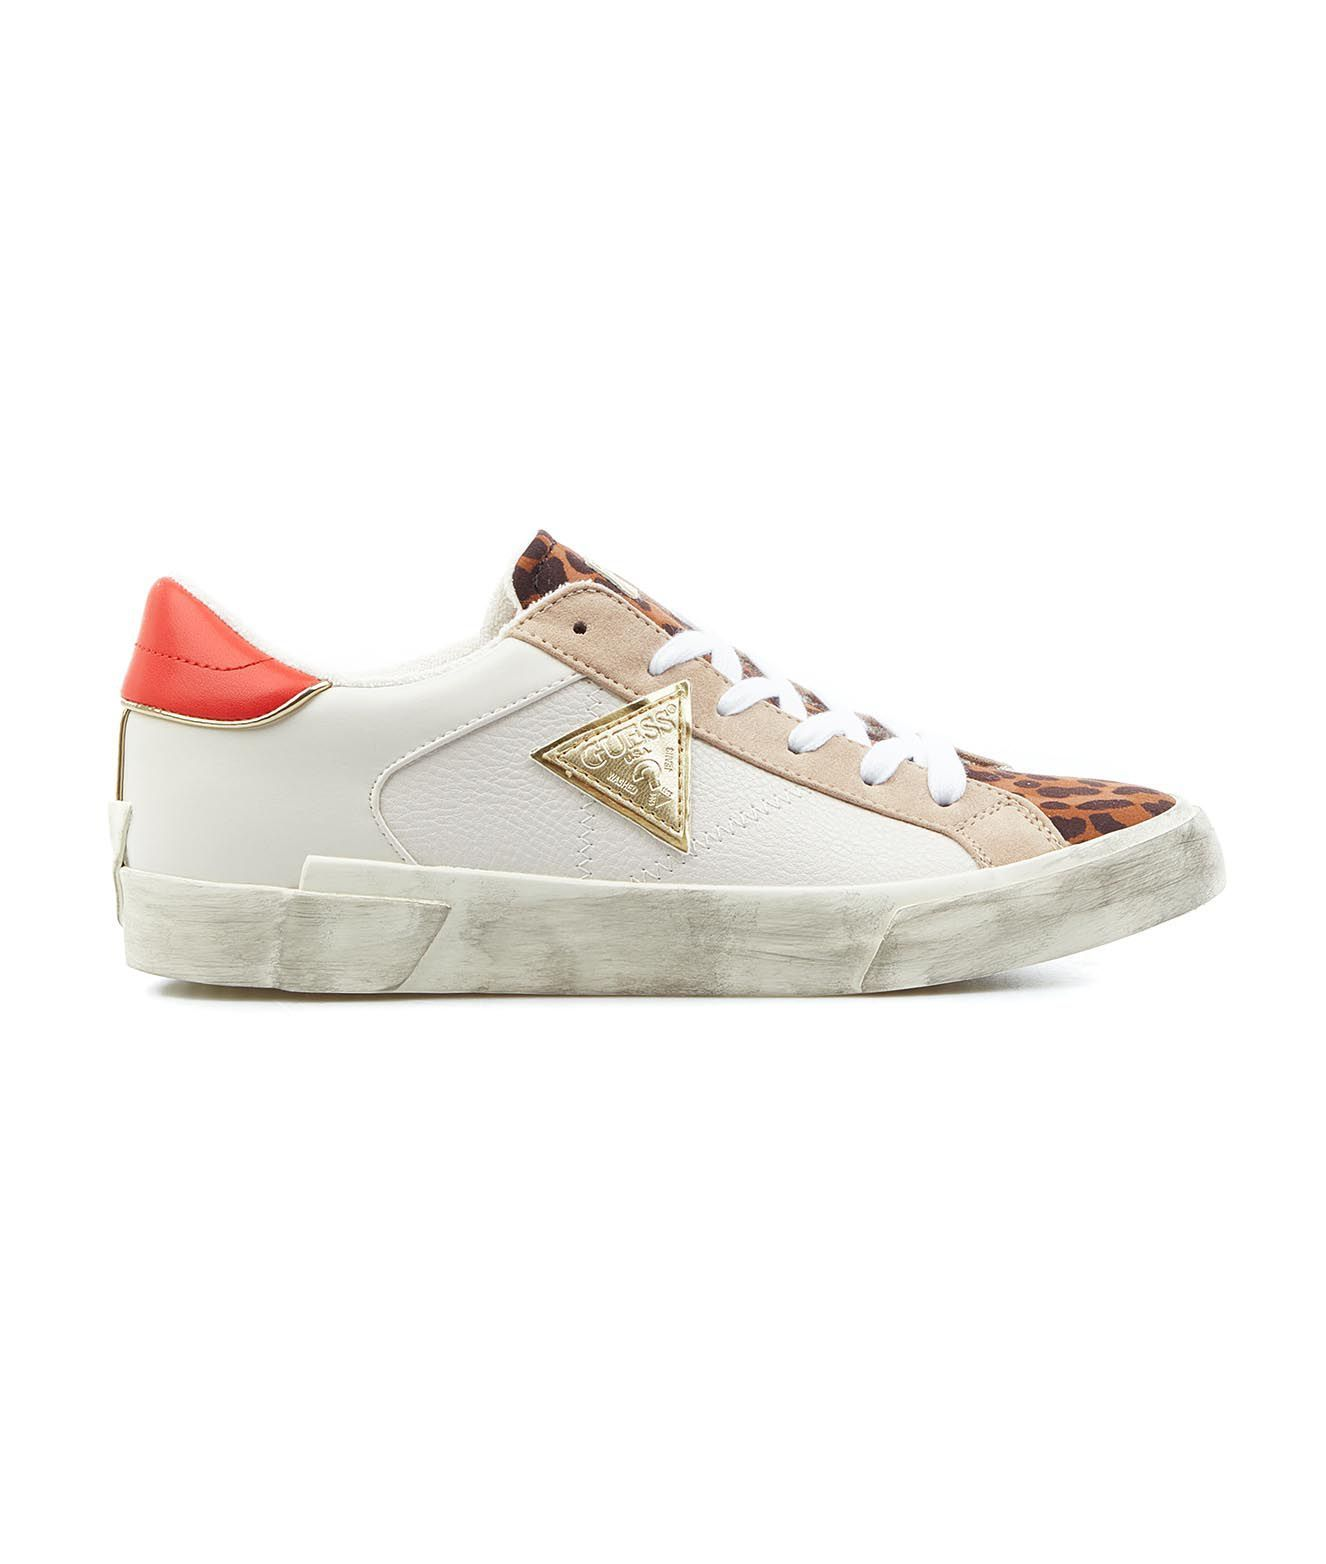 Guess Sneakers GUESS WOMEN'S FL5WESELE12 WHITE OTHER MATERIALS SNEAKERS